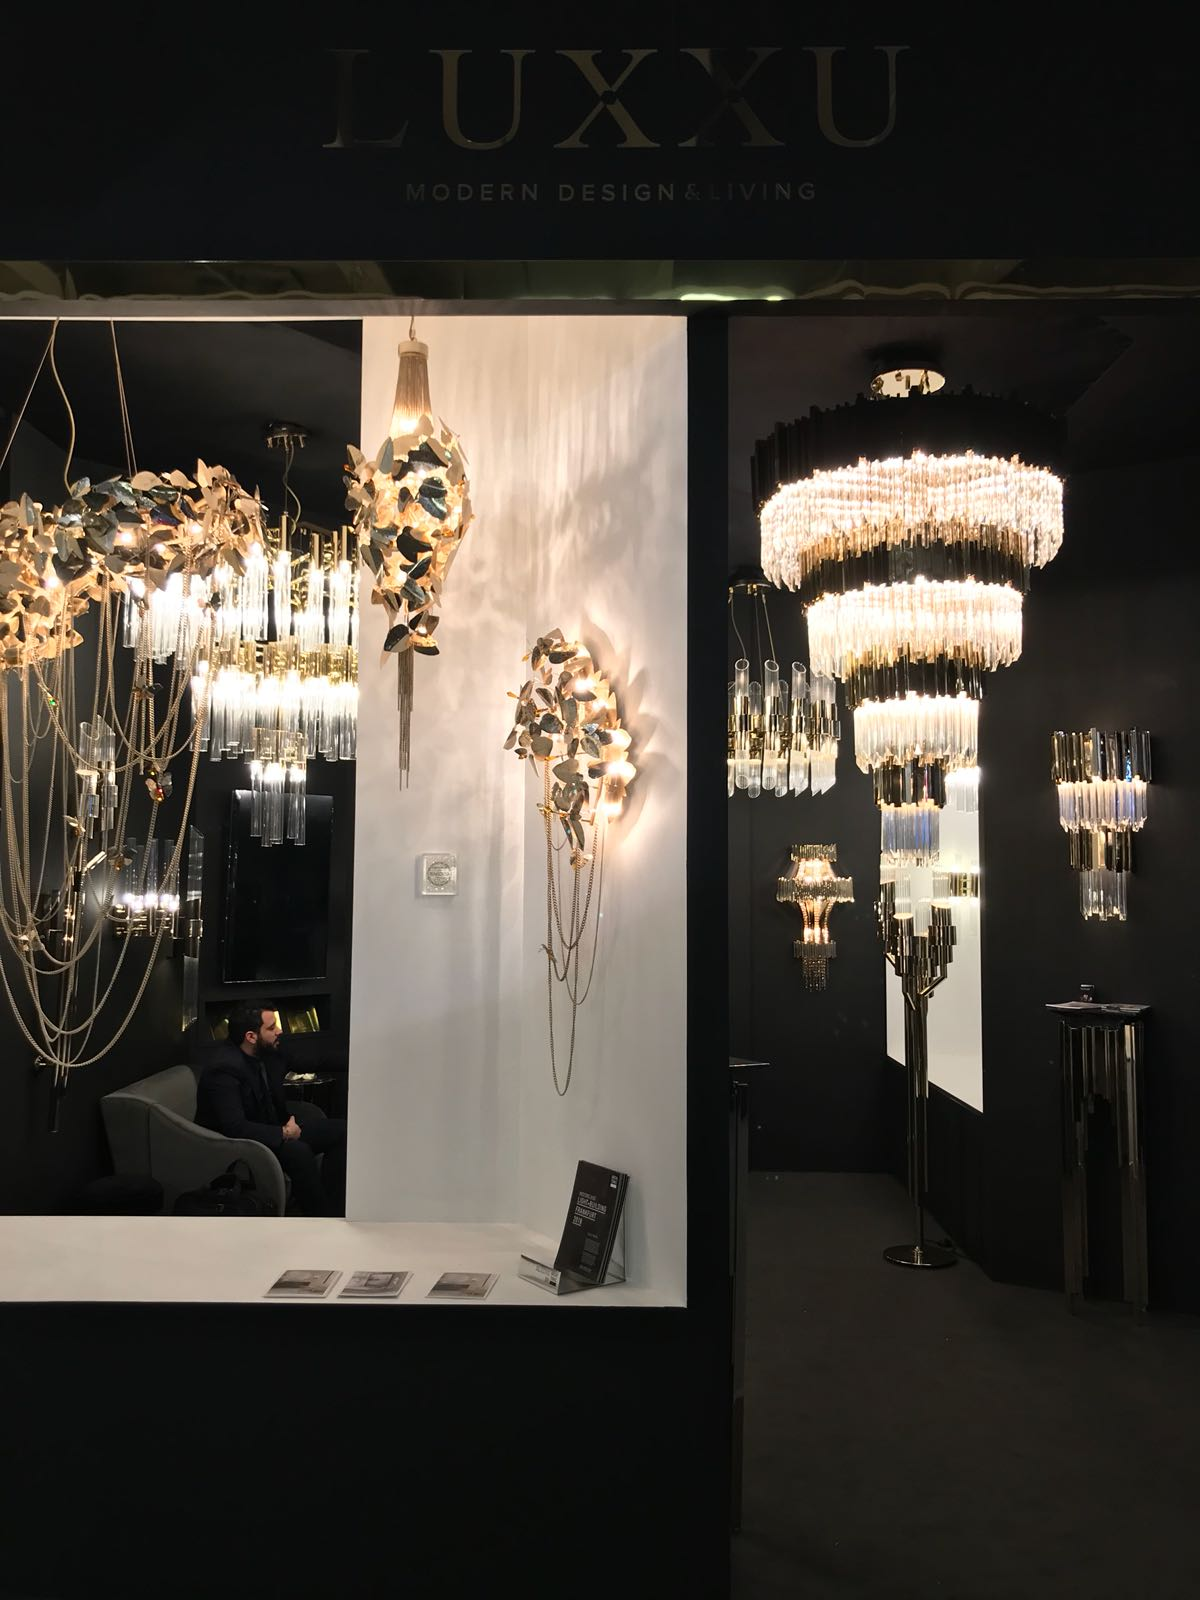 LUXXU's Highlights From Light + Building 2018 top lighting exhibitors Top Lighting Exhibitors you must see at iSaloni 2017 LUXXUs Highlights From Light Building 2018 01 top lighting exhibitors Top Lighting Exhibitors you must see at iSaloni 2017 LUXXUs Highlights From Light Building 2018 01